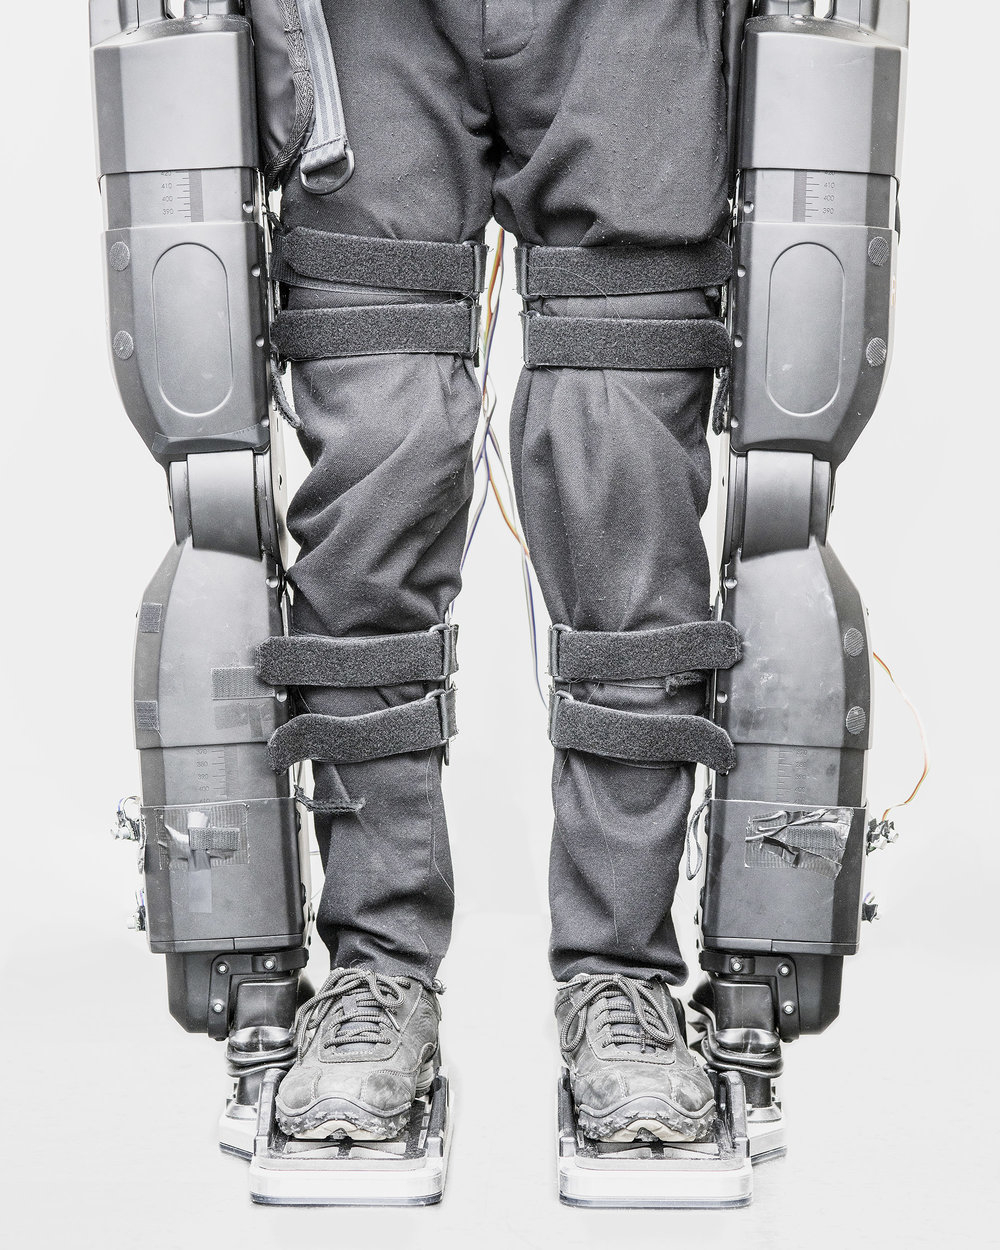 This exoskeleton can be used for therapeutic purposes or to augment the wearer's motor skills. Many companies sell such products, in general as support for a strenuous activity or to treat physical handicaps. But DARPA, the Defense Advanced Research Projects Agency, is working on the most spectacular exoskeleton prototype, capable of turning a soldier into a nearly inexhaustible war machine.